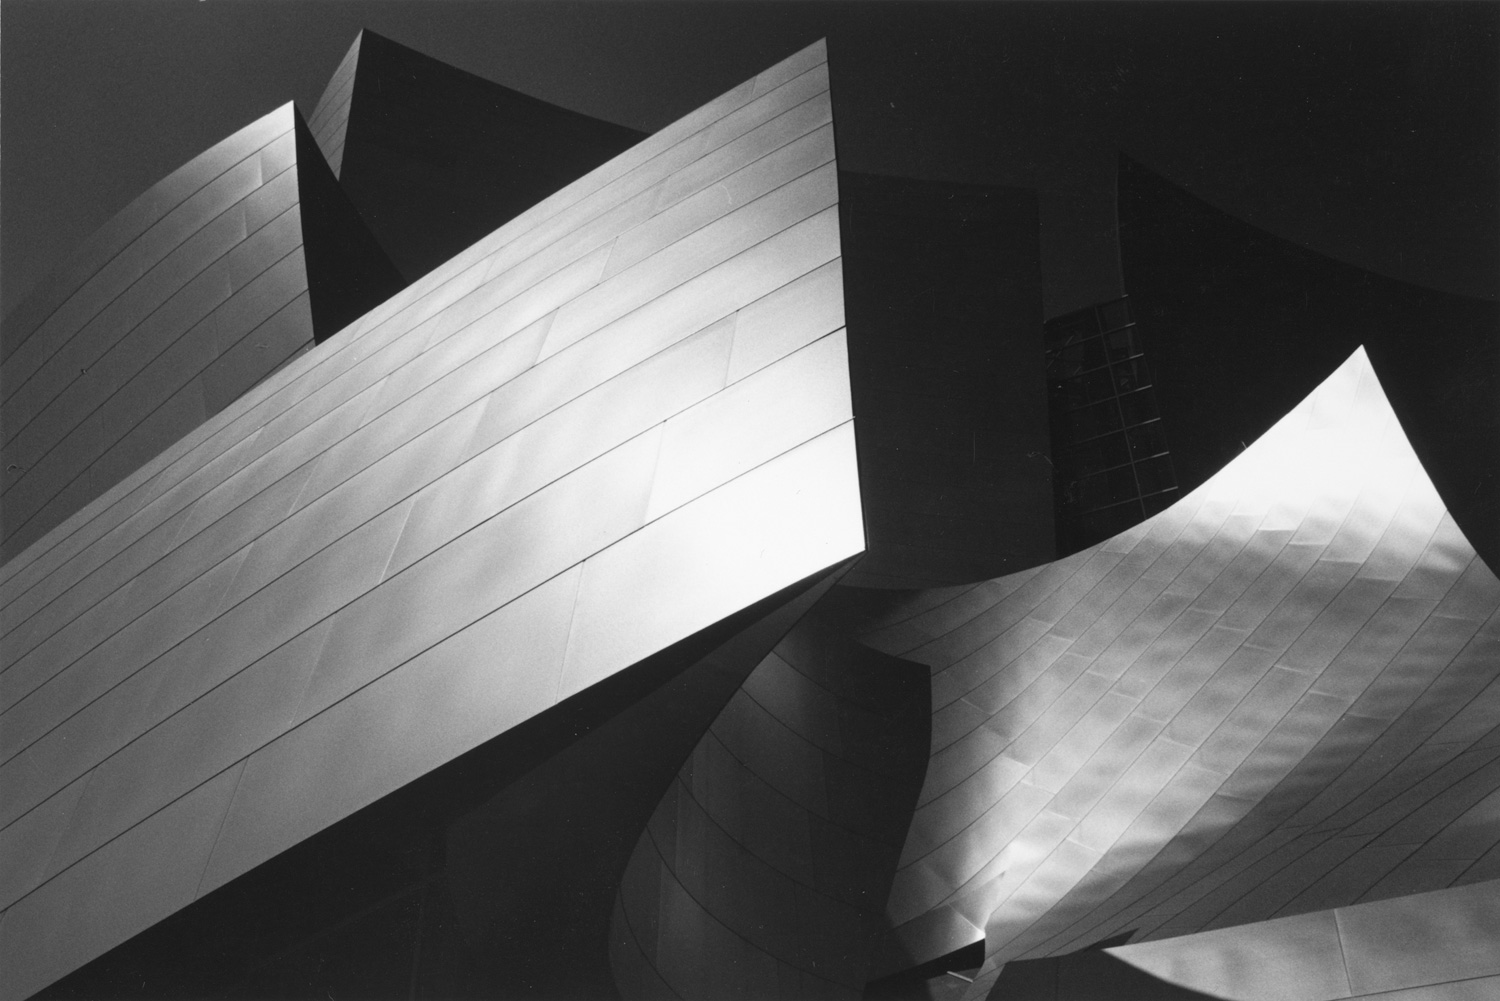 Frank Gehry's Vision I